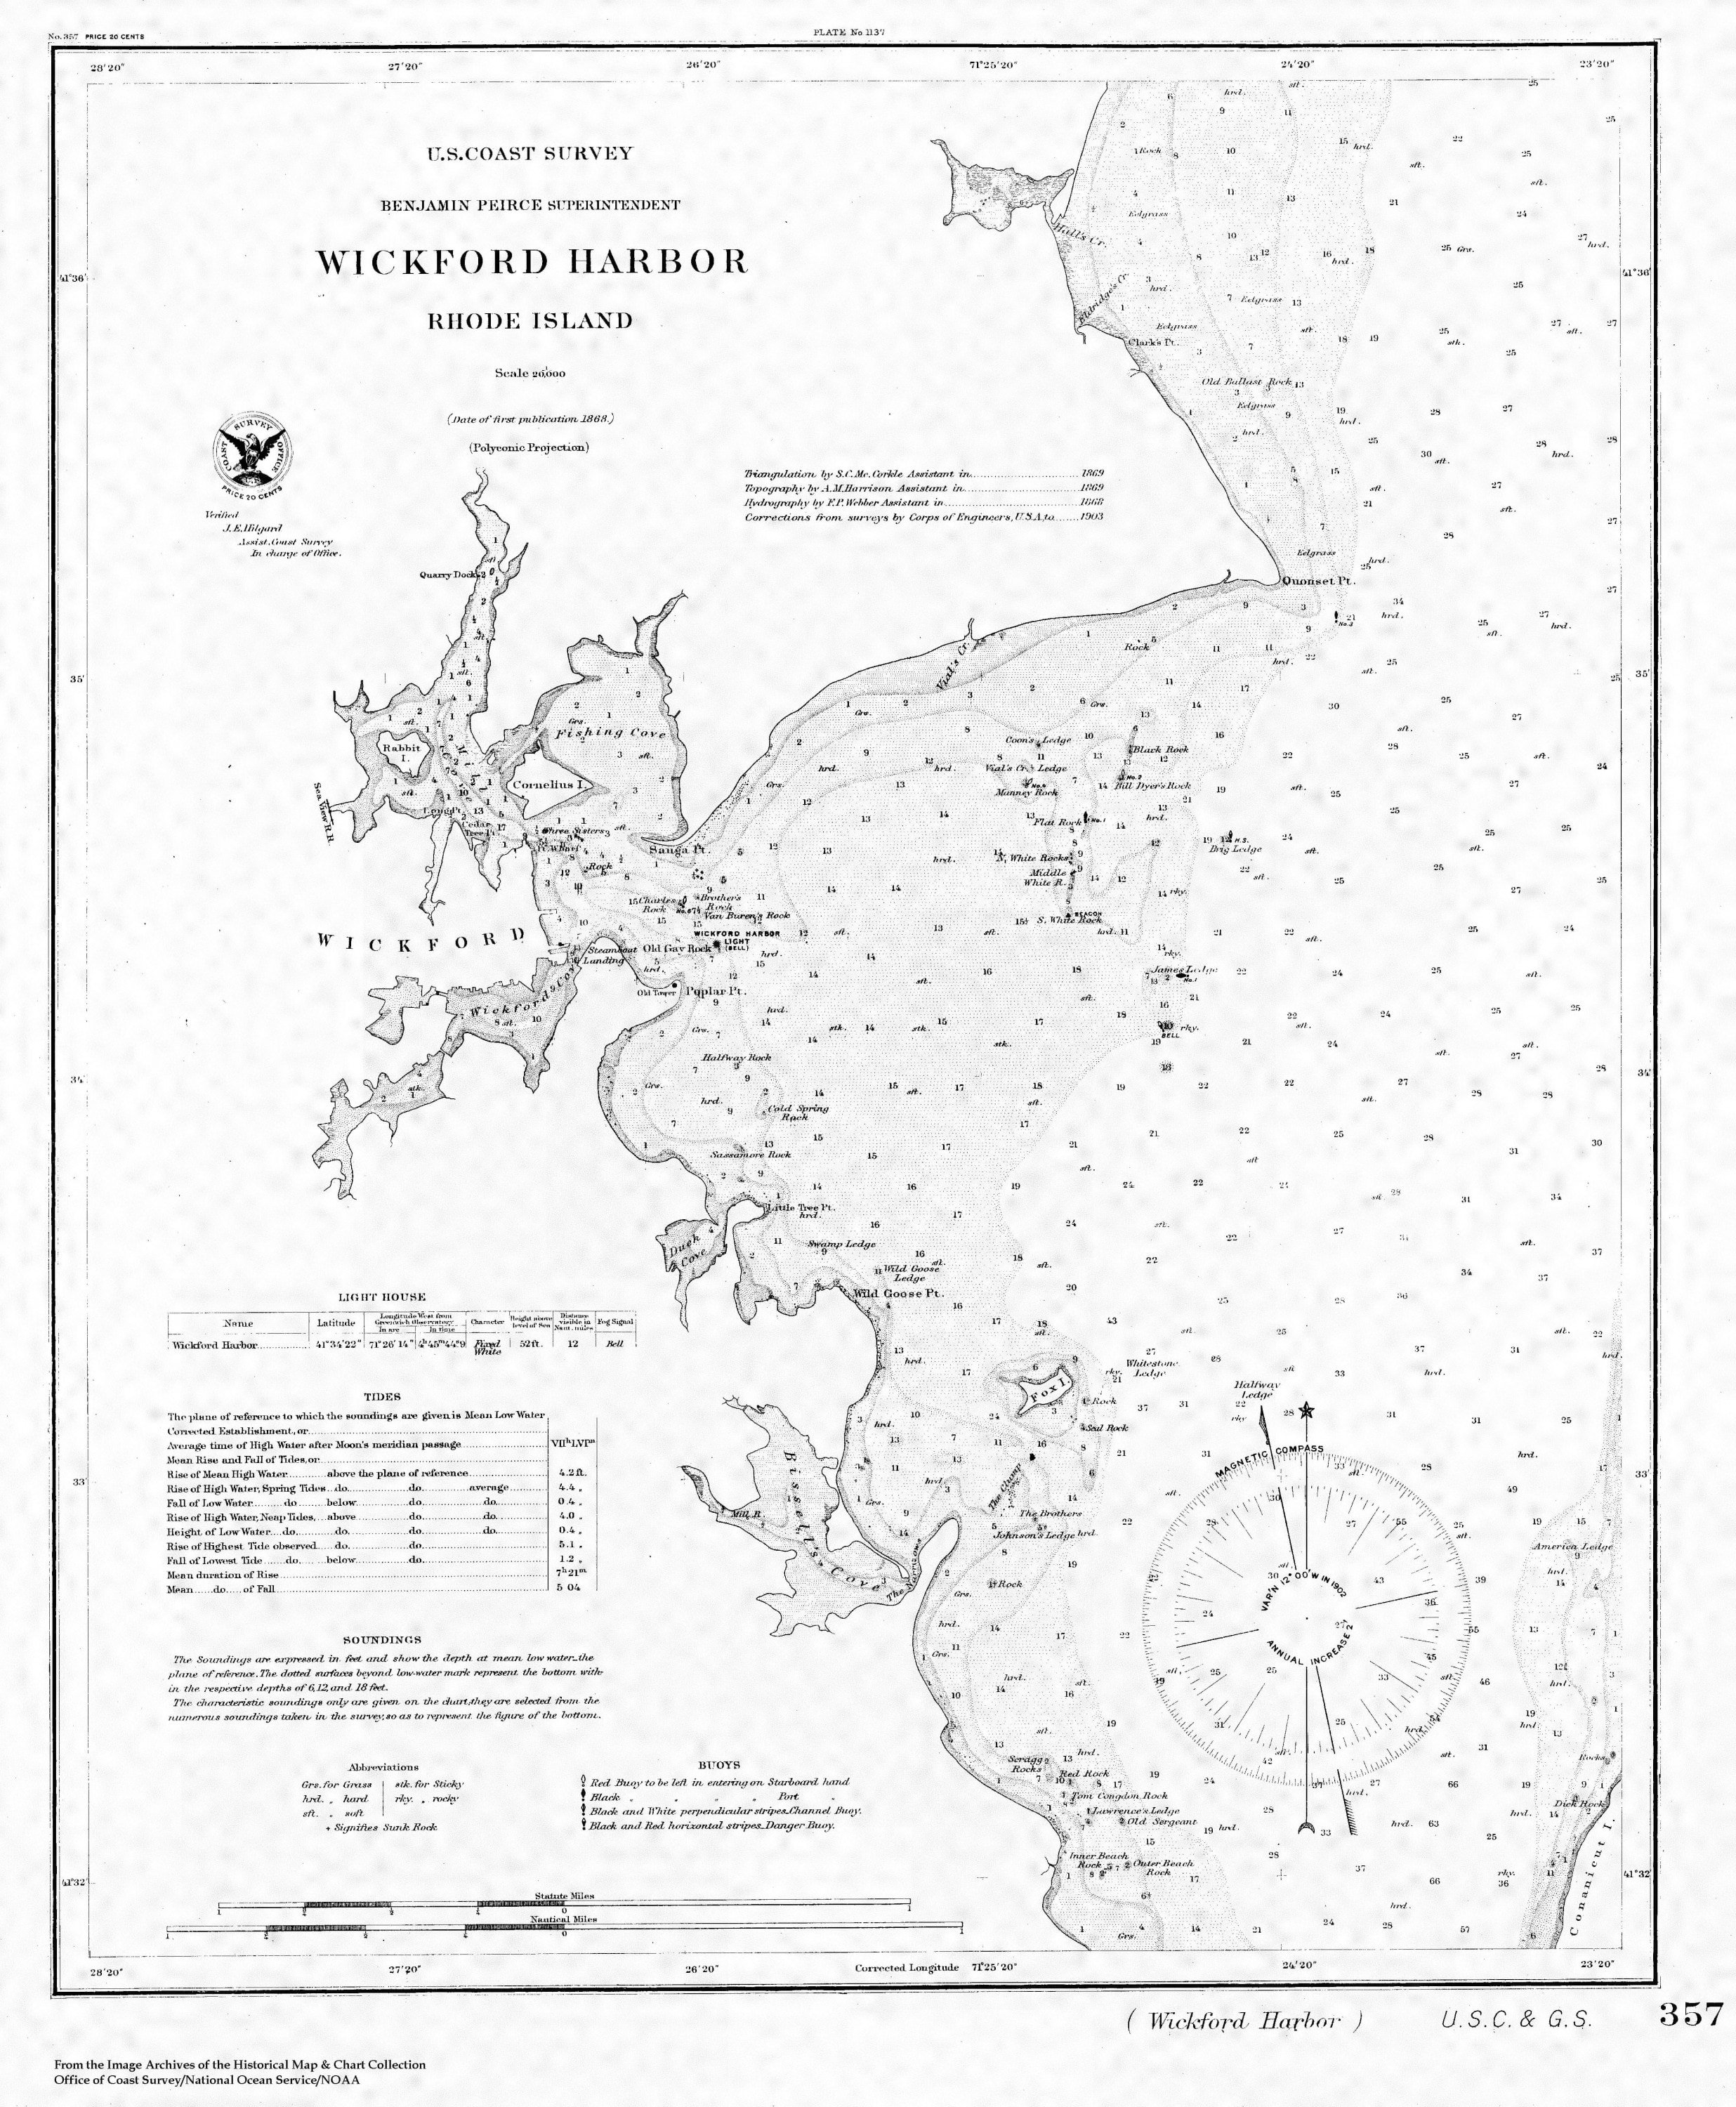 Rare Printing Plate For A Chart Of Wickford Harbor Ri Rare - Us-coast-and-geodetic-survey-maps